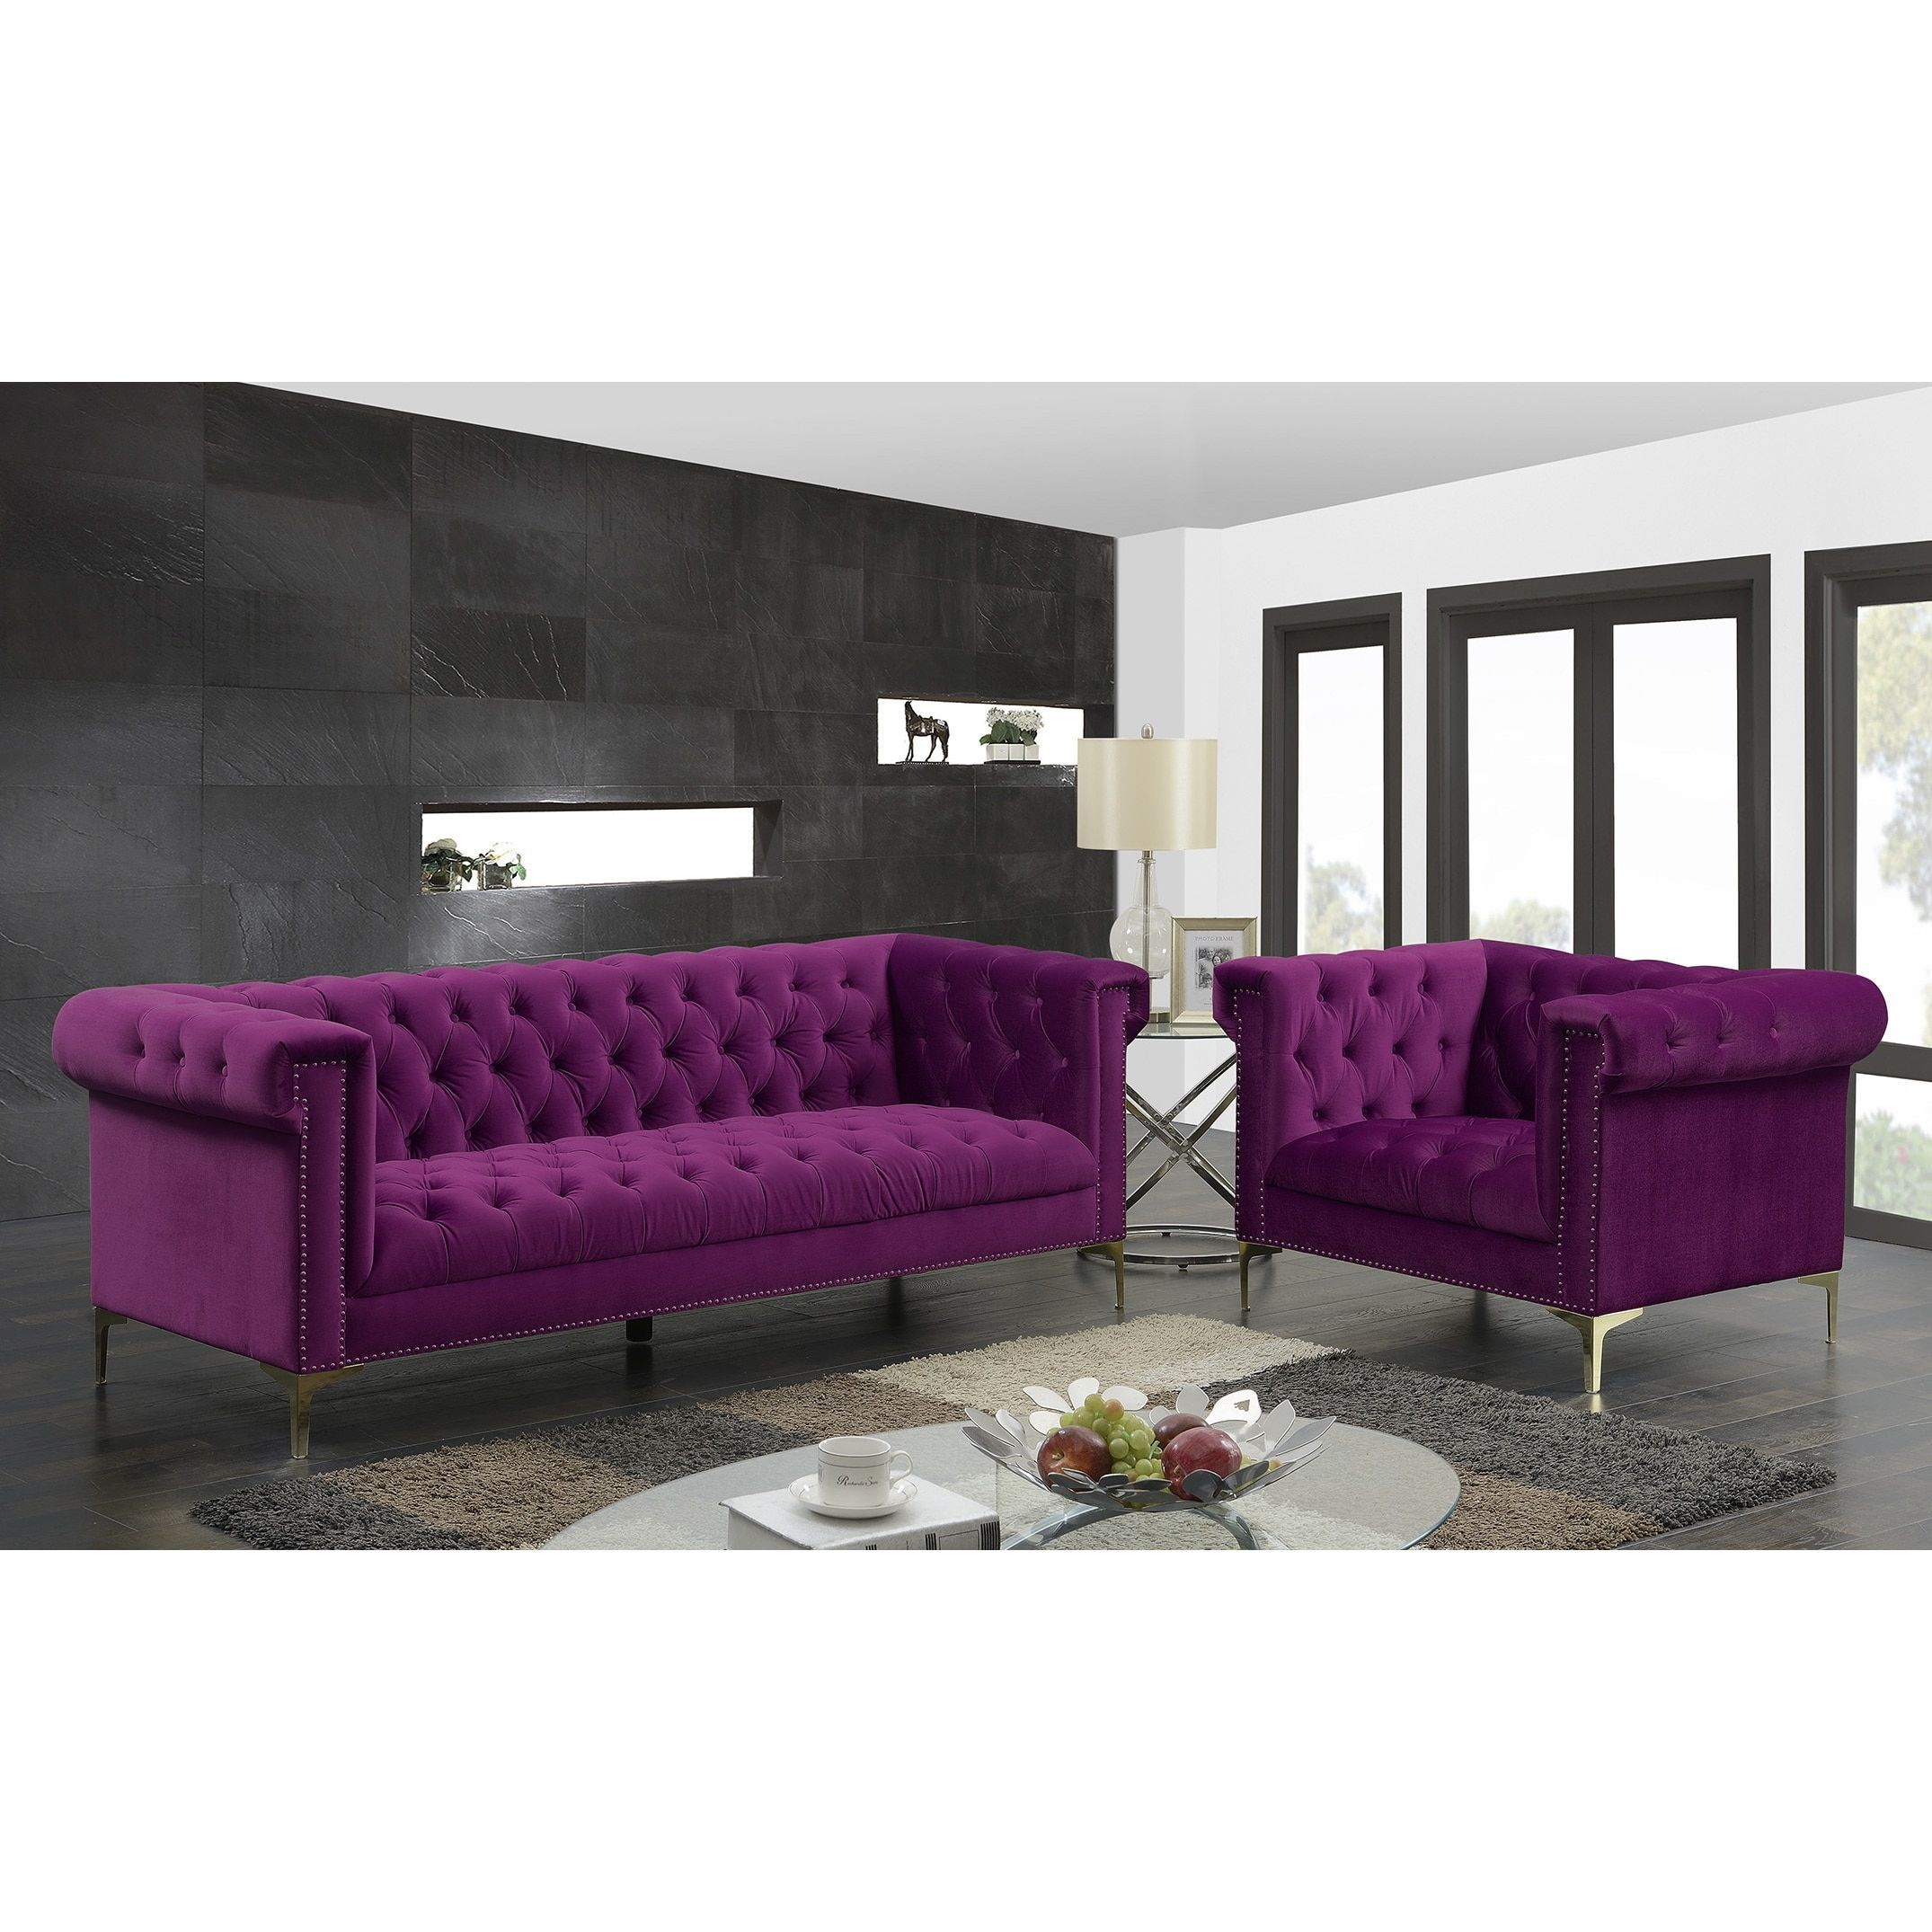 loveseat part portfolio online furniture is collection pin the niles of settee plum armless